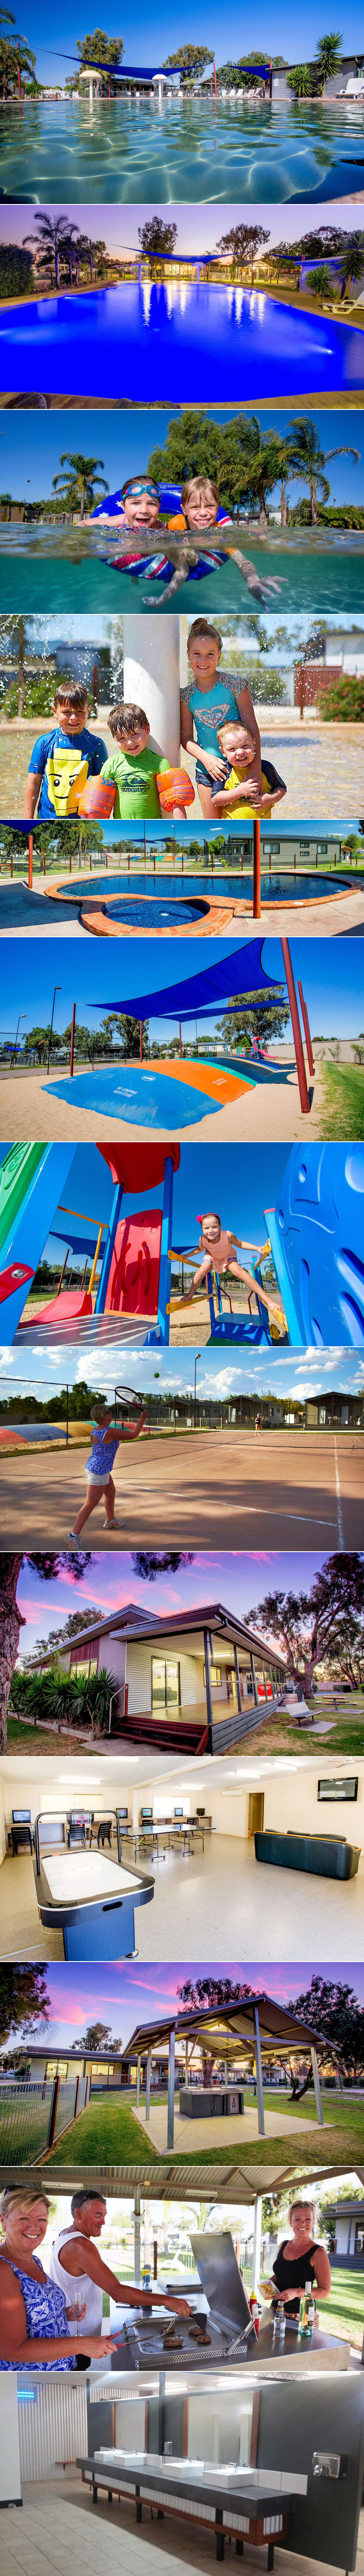 BIG4 NRMA Yarrawonga Mulwala Holiday Park - Grounds and facilities